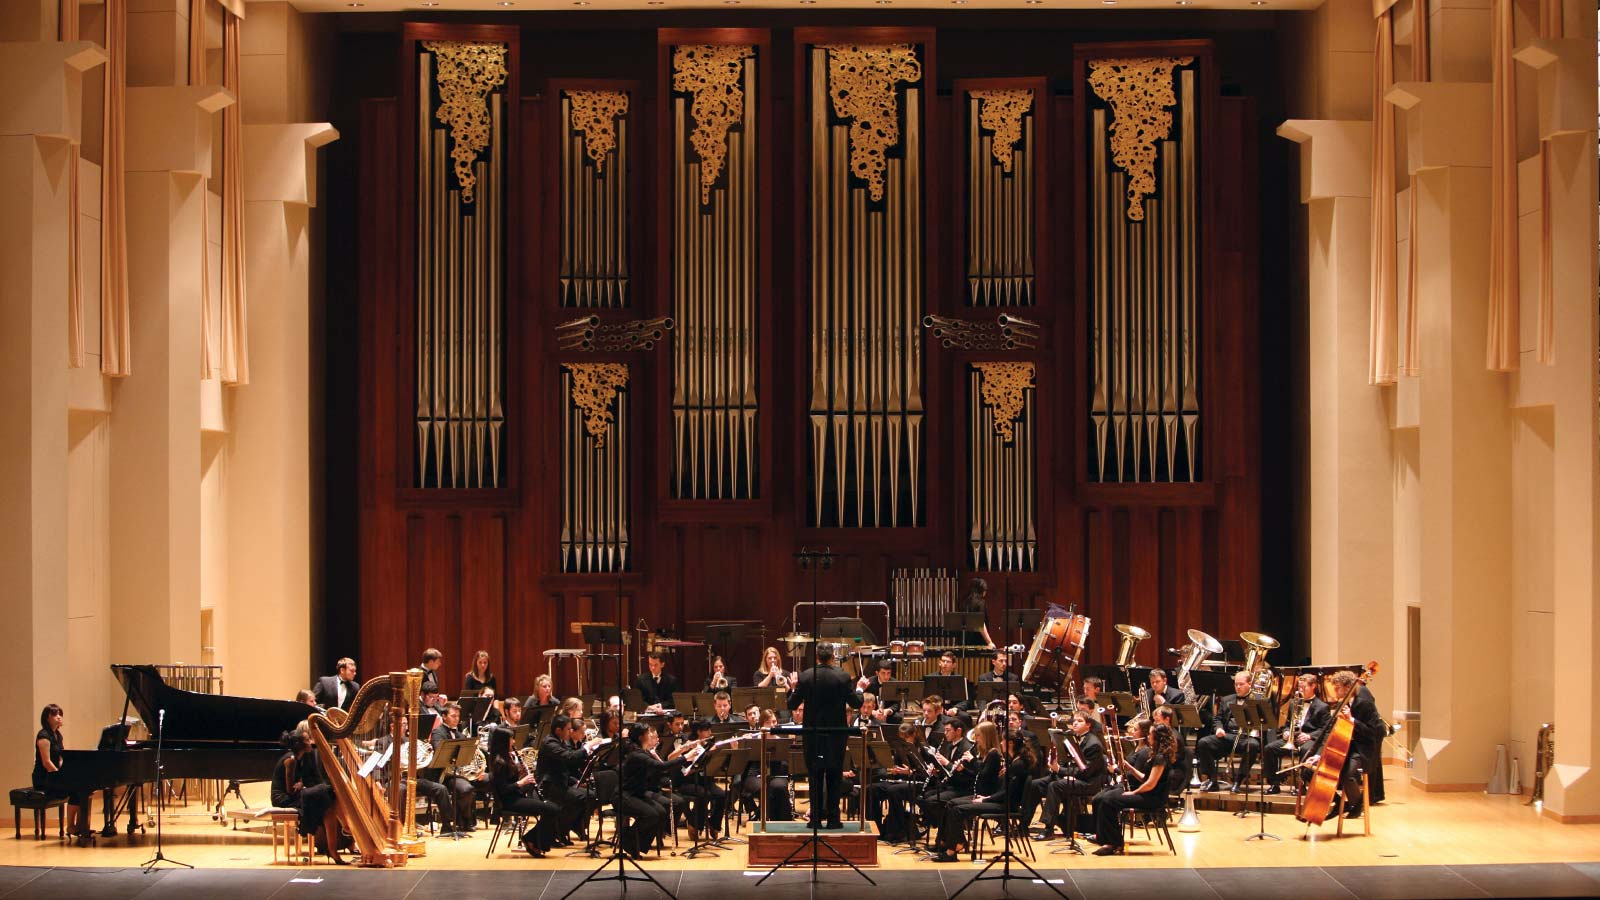 Jones Concert Hall of the School of Music is a majestic, 1,000-seat hall located in the Glennis McCrary Music Building.